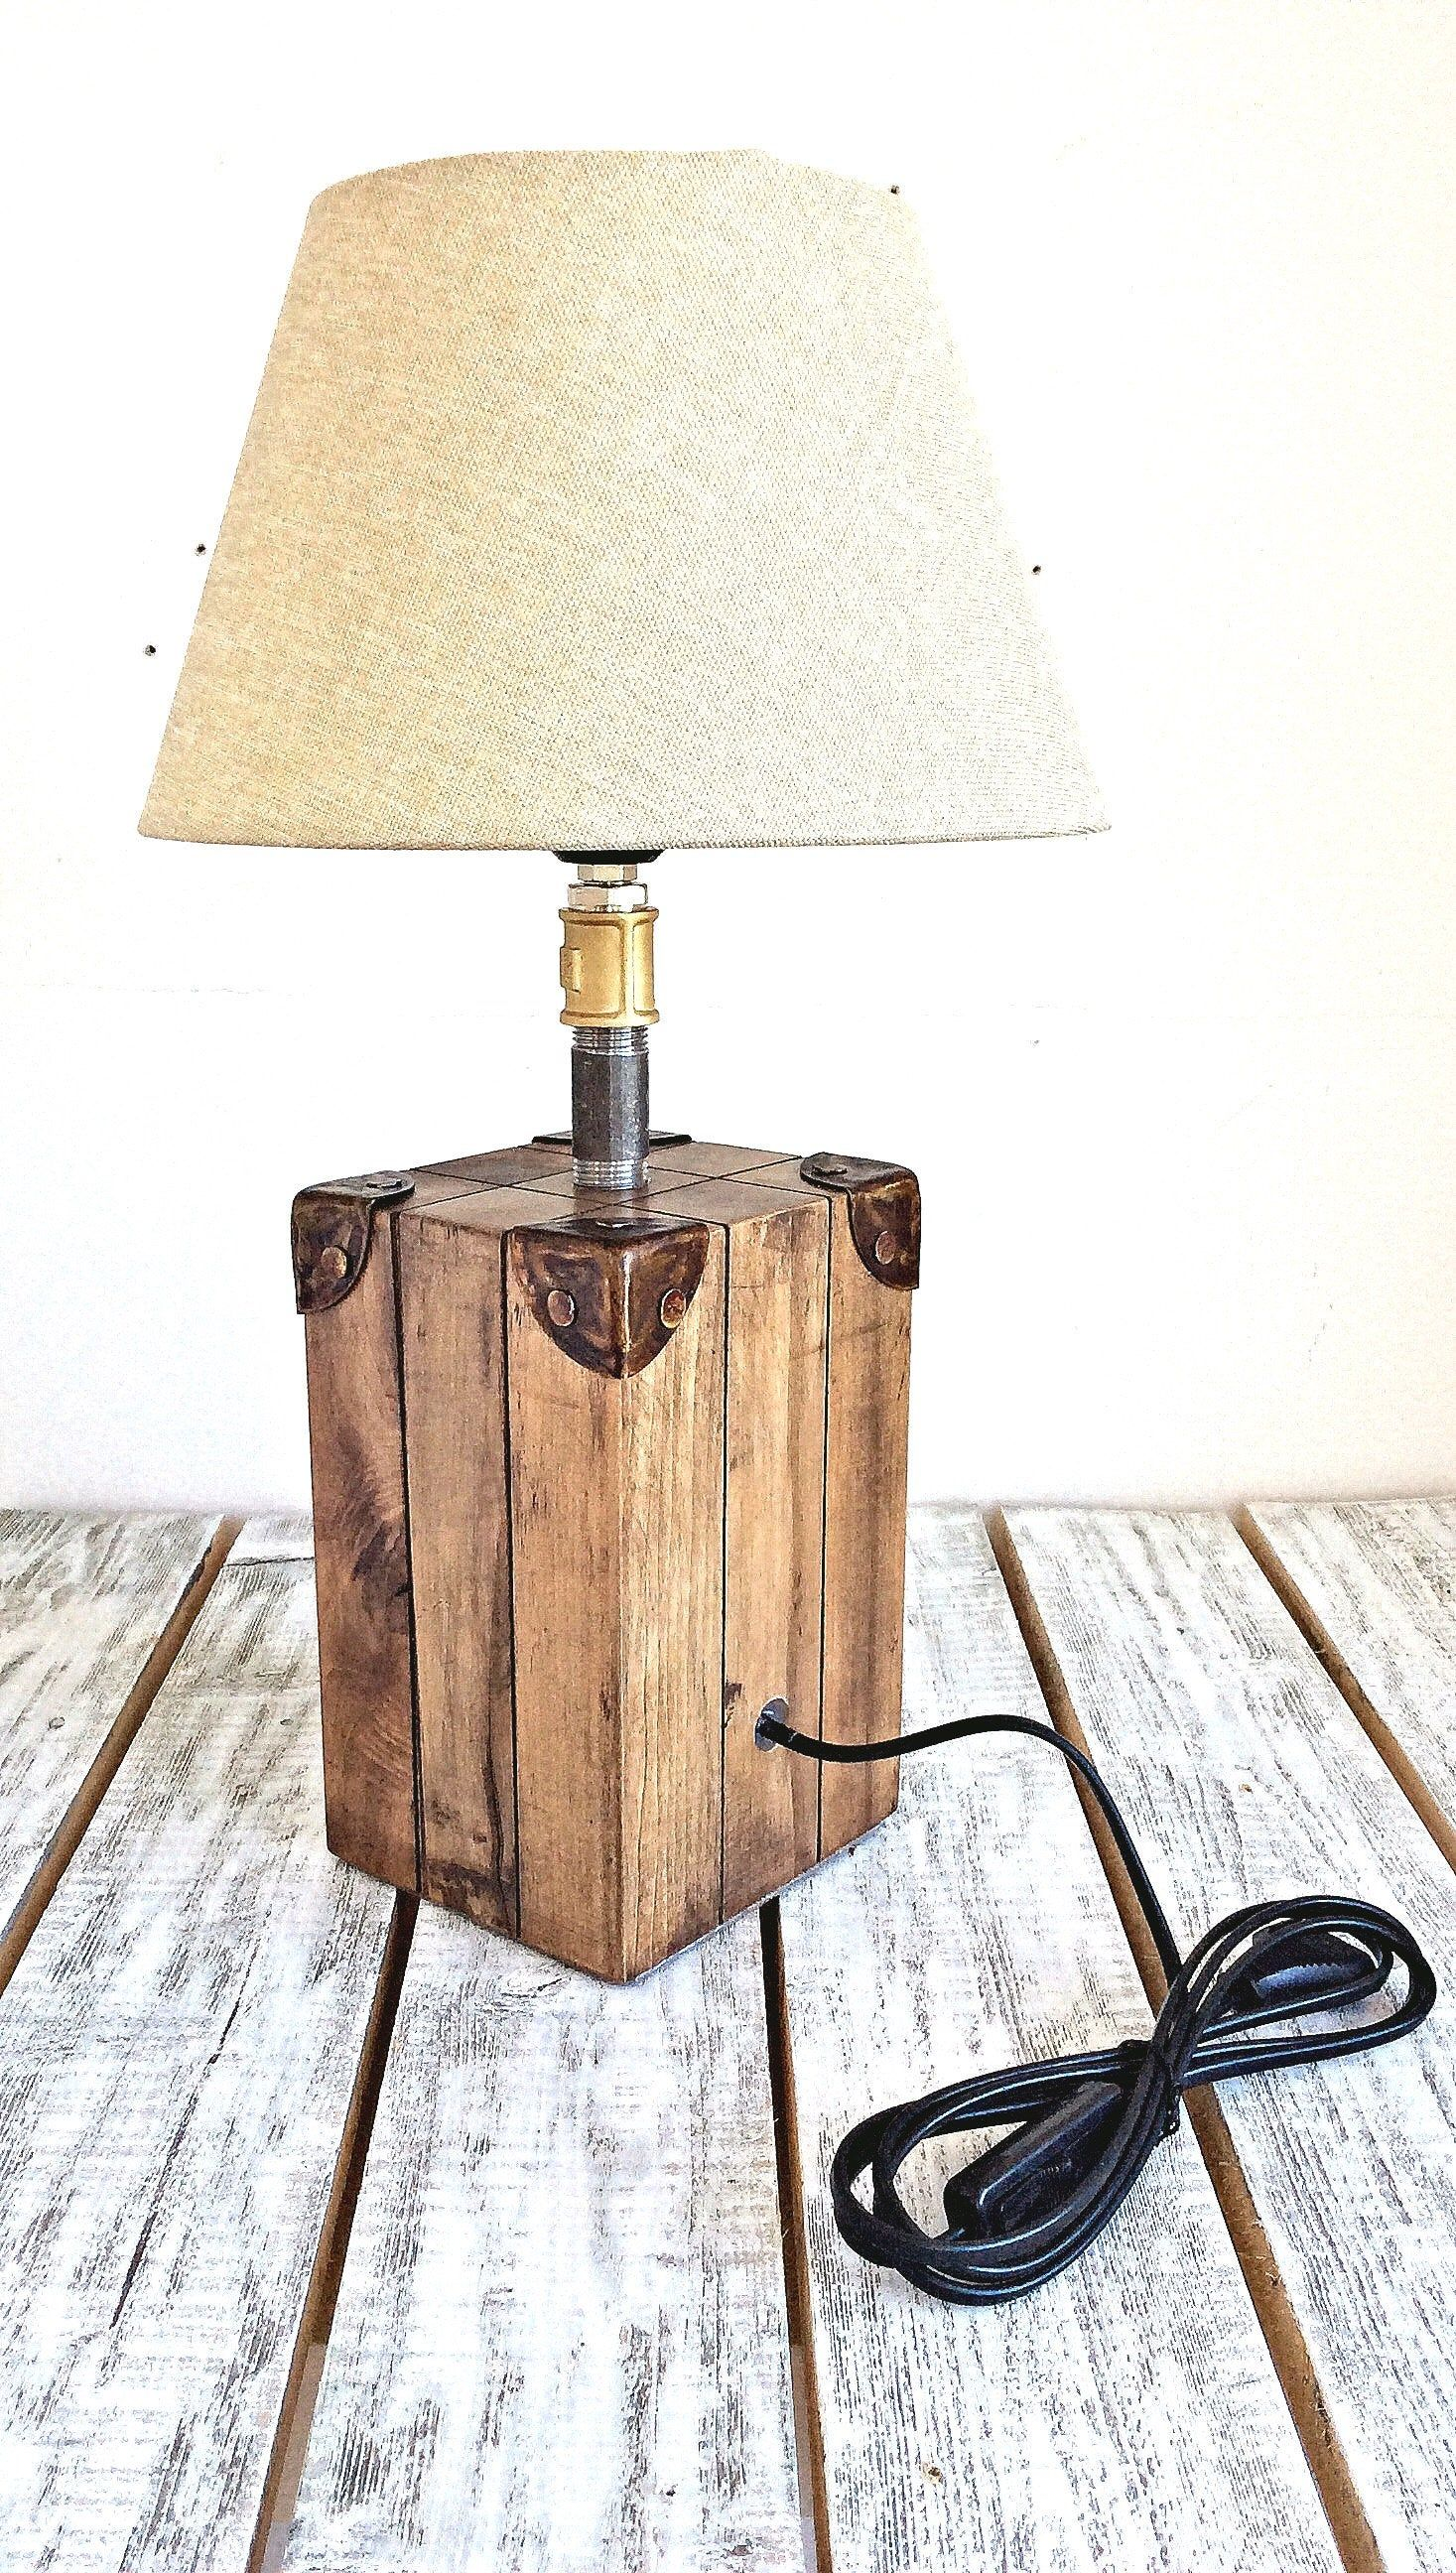 Bedside Lamp Table Lamp Wood Lamp Desk Lamp Rustic Lighting Wood Lamp Base Holzlampe Tischlampen Und Rustikale Beleuchtung